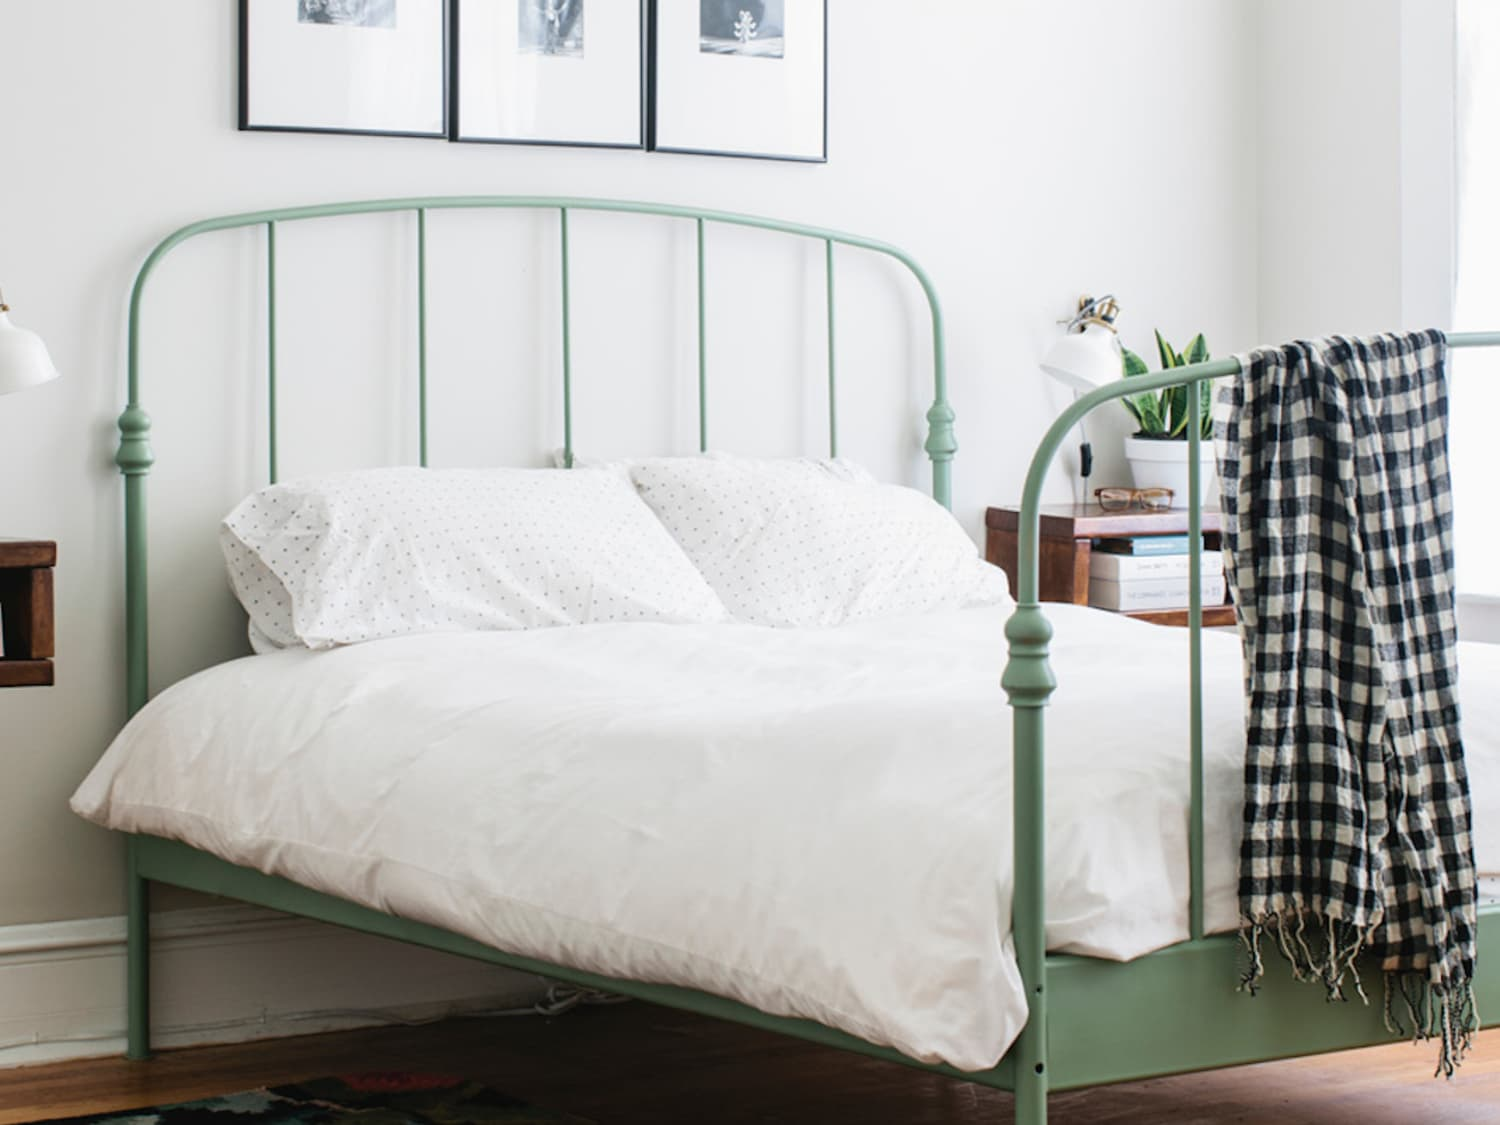 10 Easy Ikea Hacks Using Spray Paint Apartment Therapy